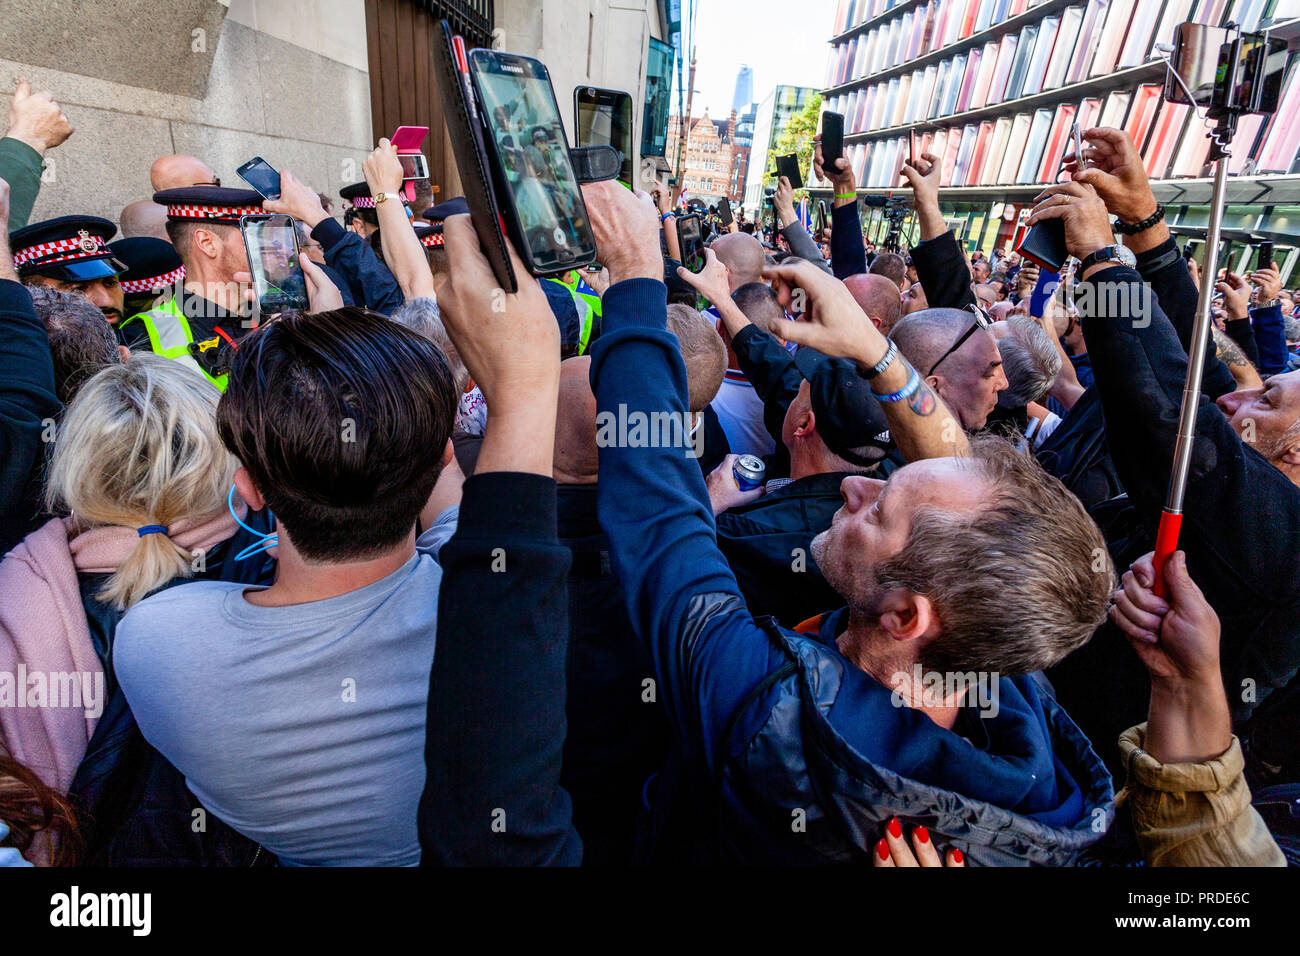 Supporters Of The Right Wing Activist Tommy Robinson Film Him With Their Mobile Phones Leaving 'The Old Bailey' Court, London, UK - Stock Image